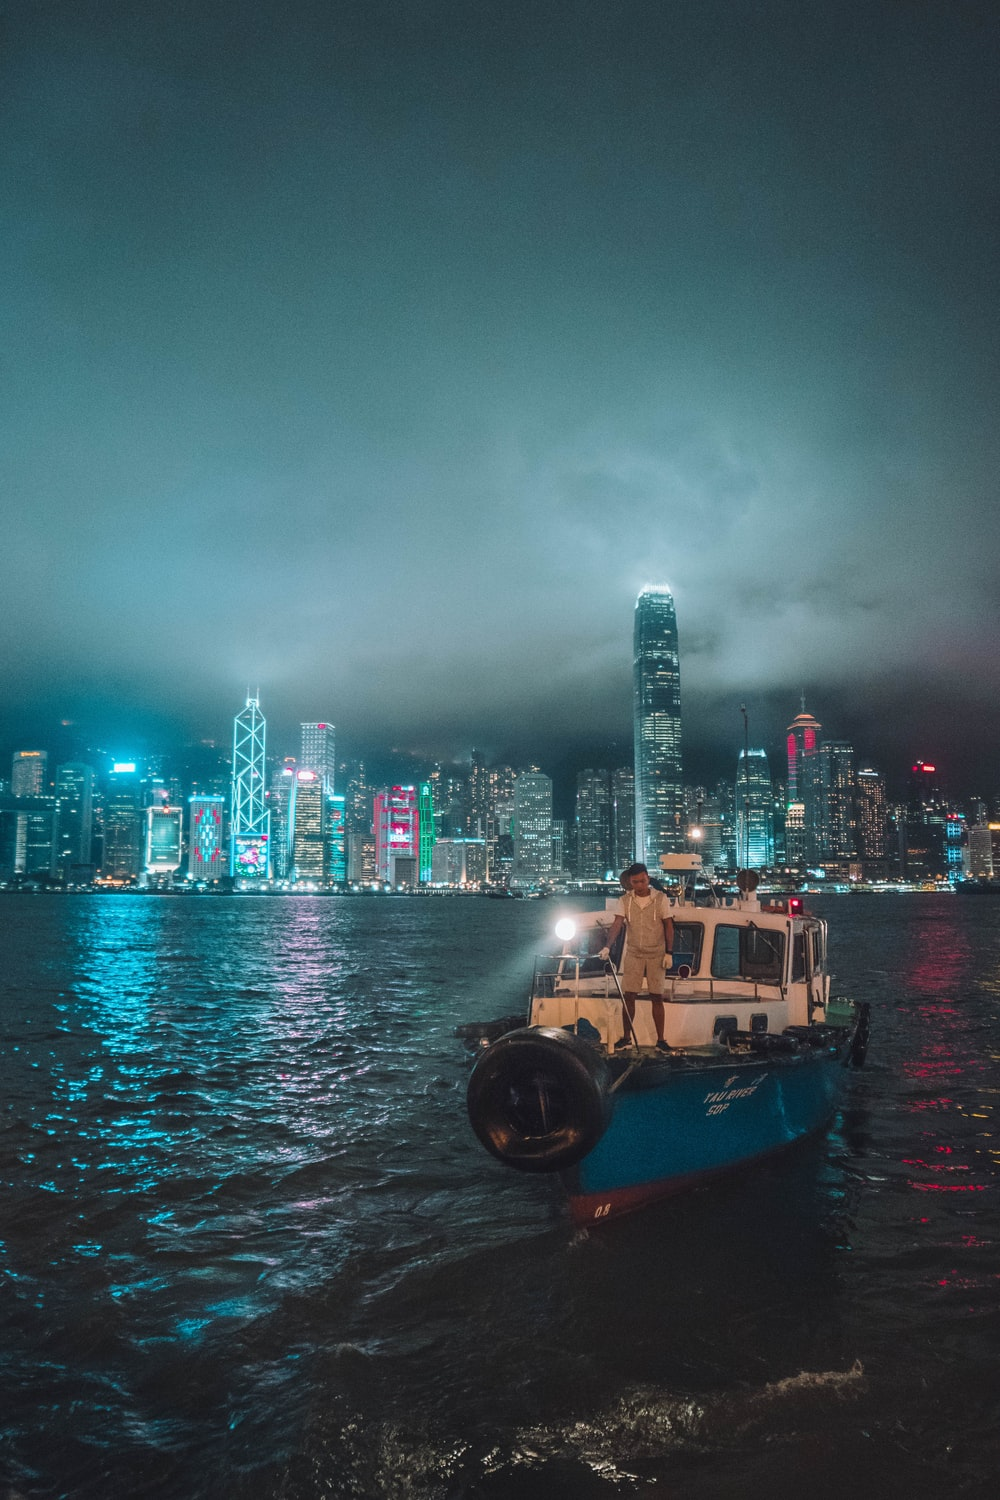 person standing on fishing boat near buildings at night